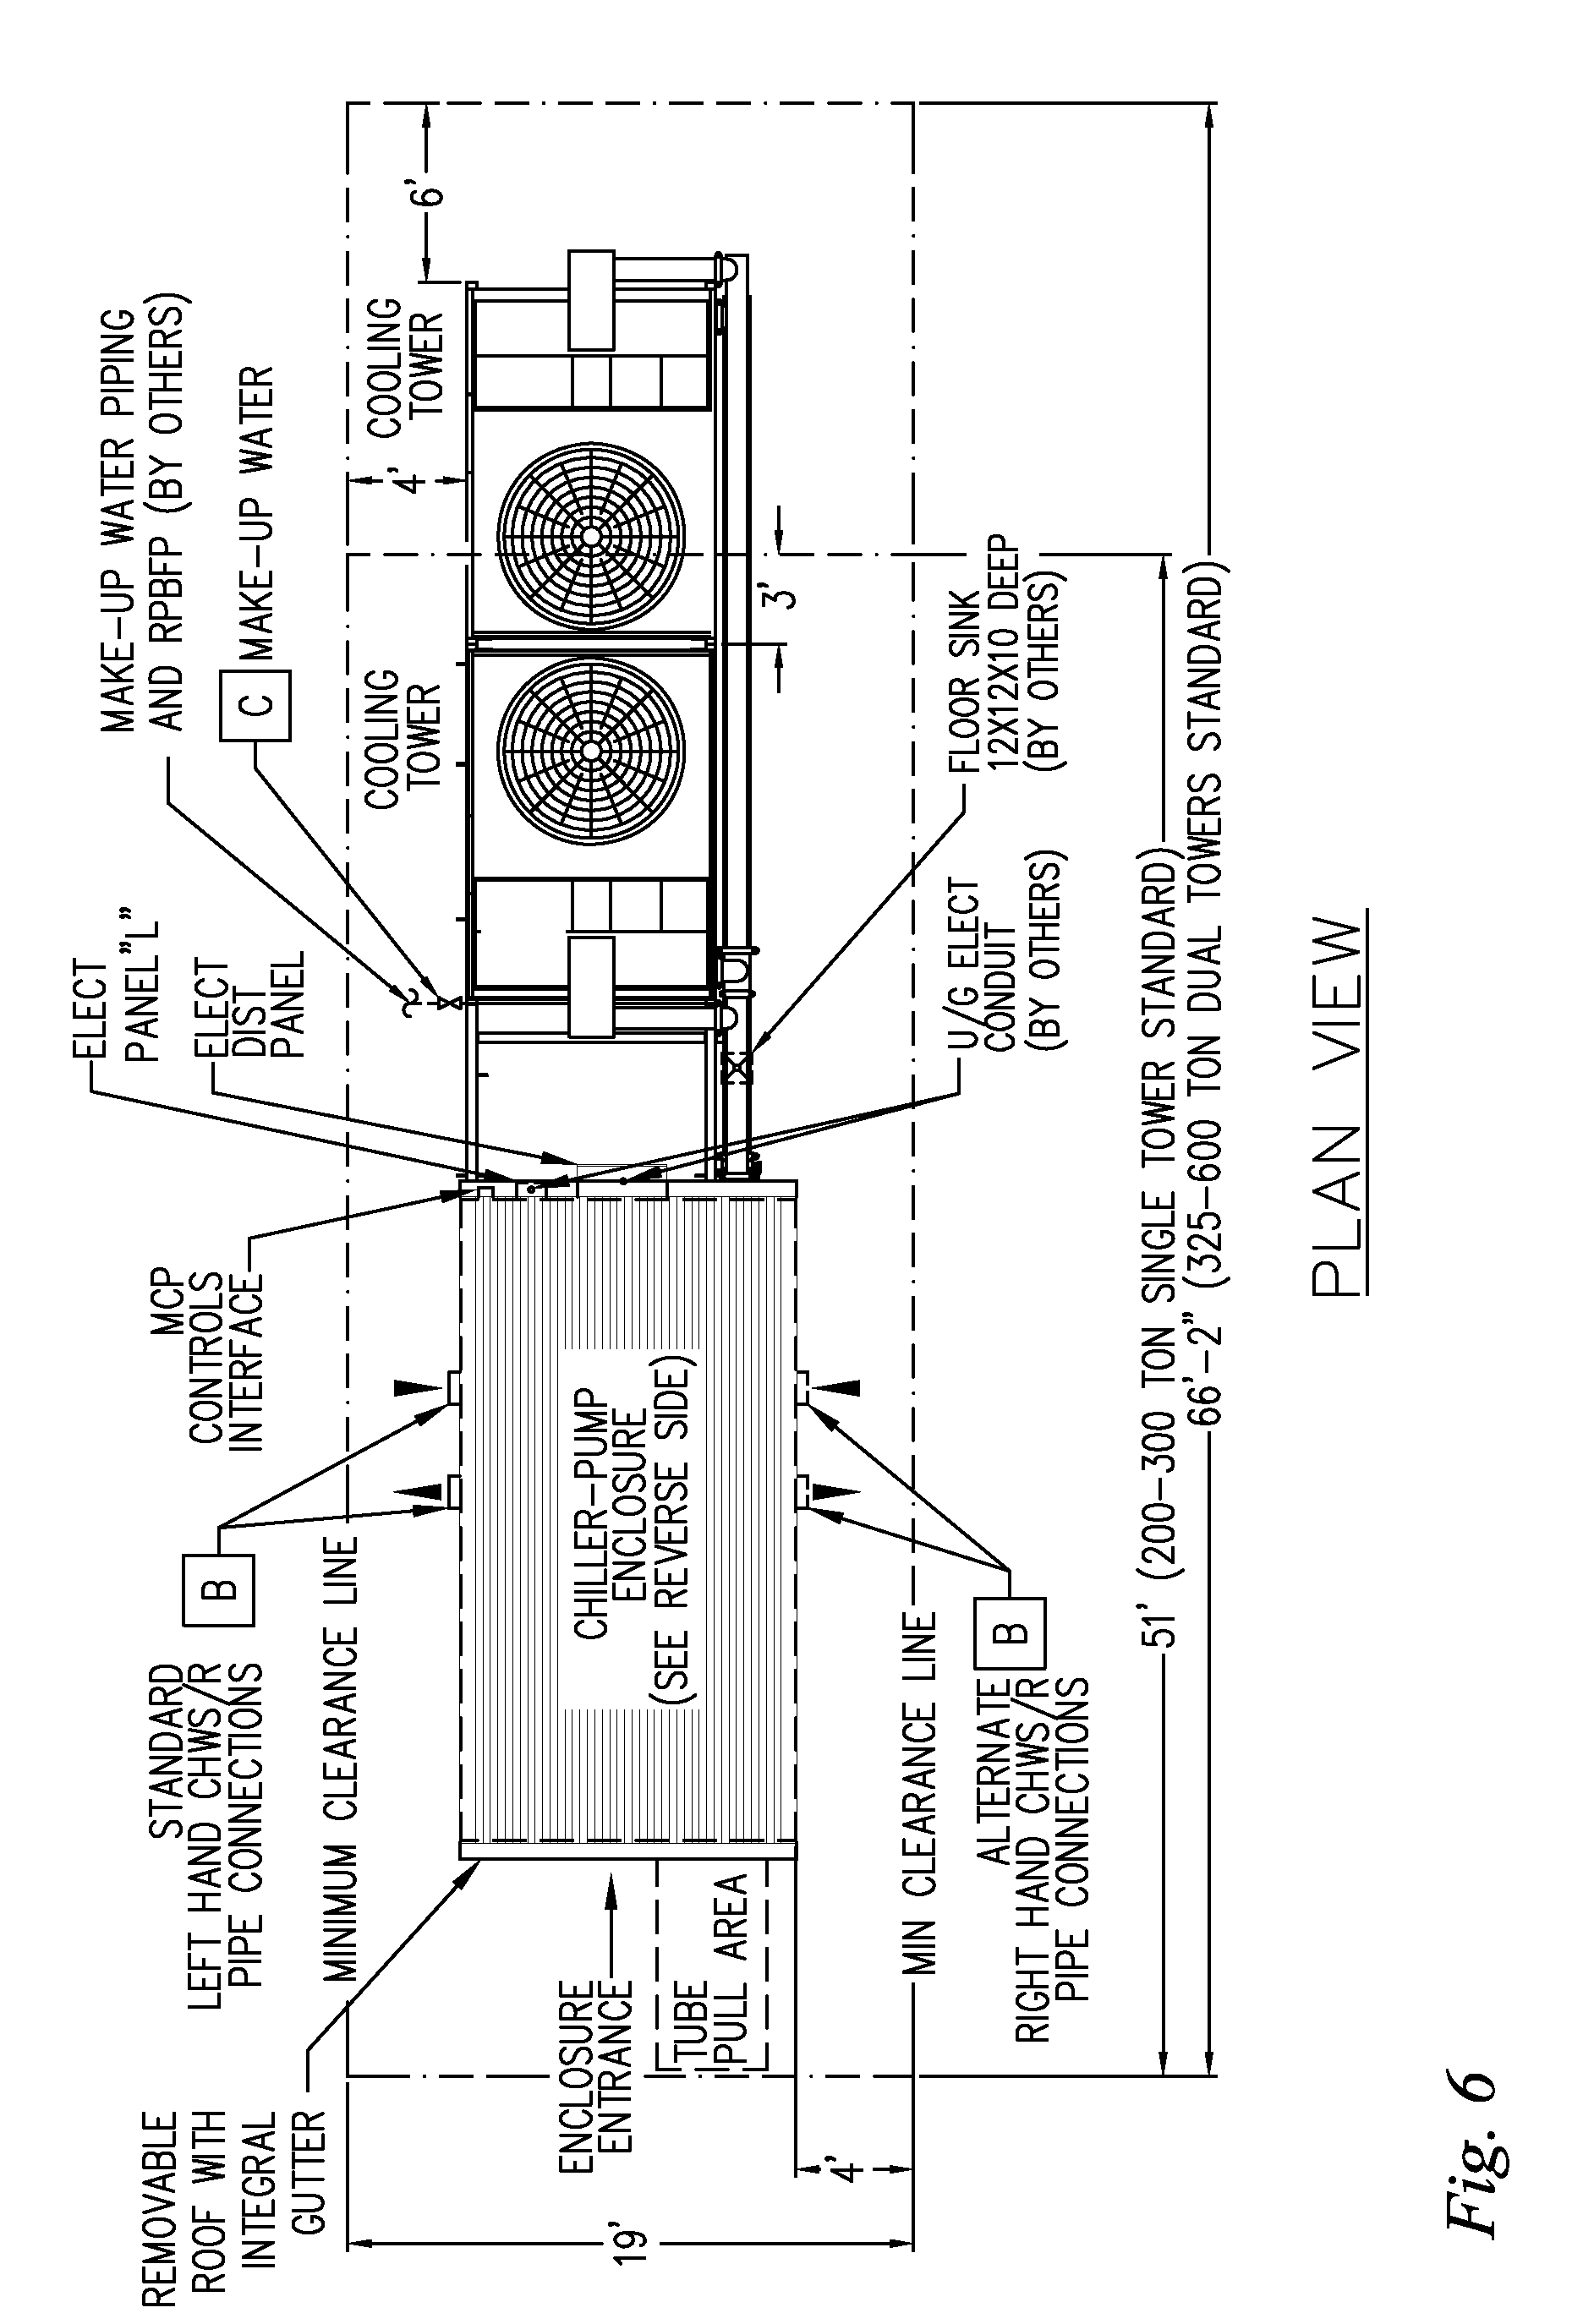 patent us20080127662 - method  system  and apparatus for modular central plant